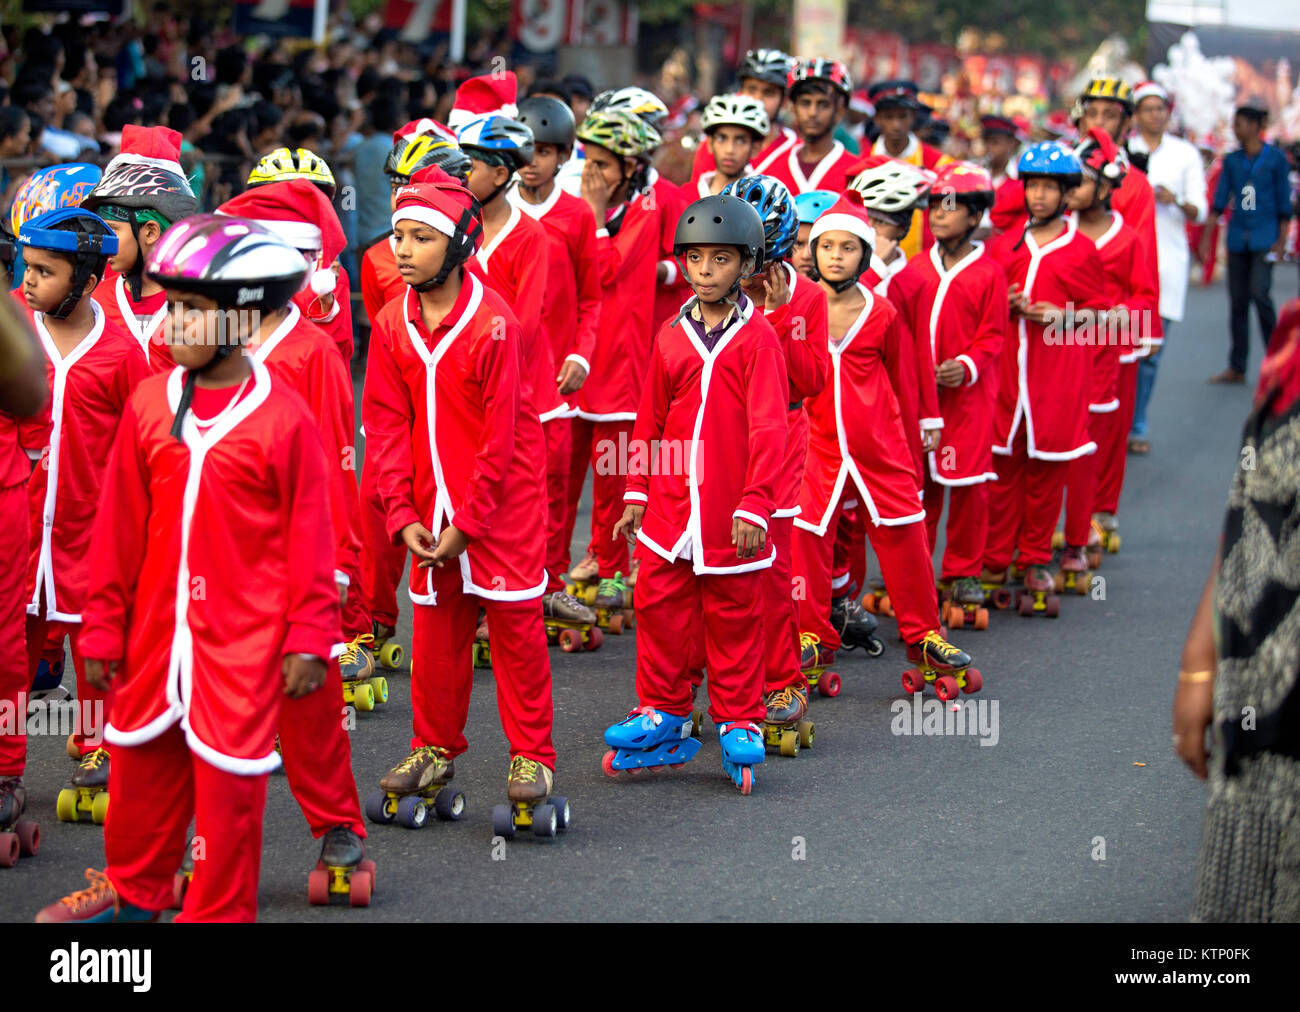 Buon Natale Thrissur.Kids With Roller Skating Wearing Santa S Clothes Participating In